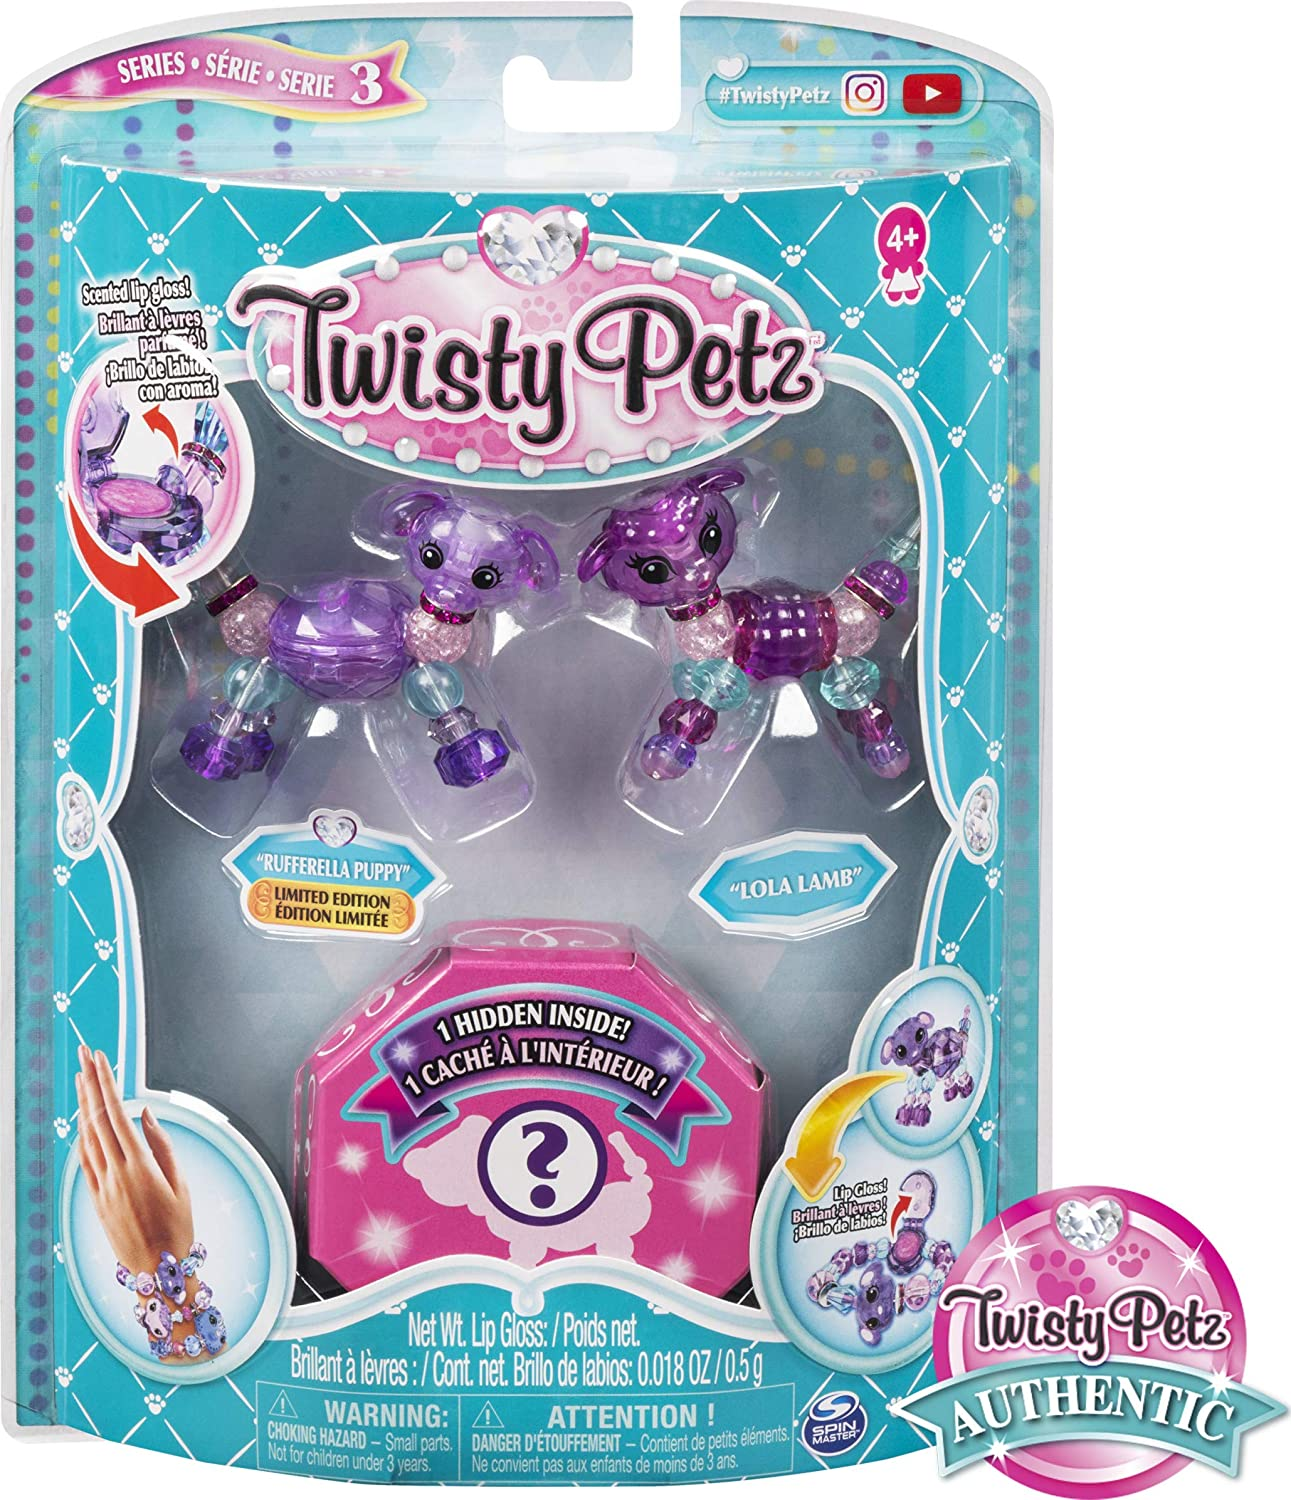 Twisty Petz Babies Series 3 Otter Twins and Puppy Twins Collectible Bracelet Set